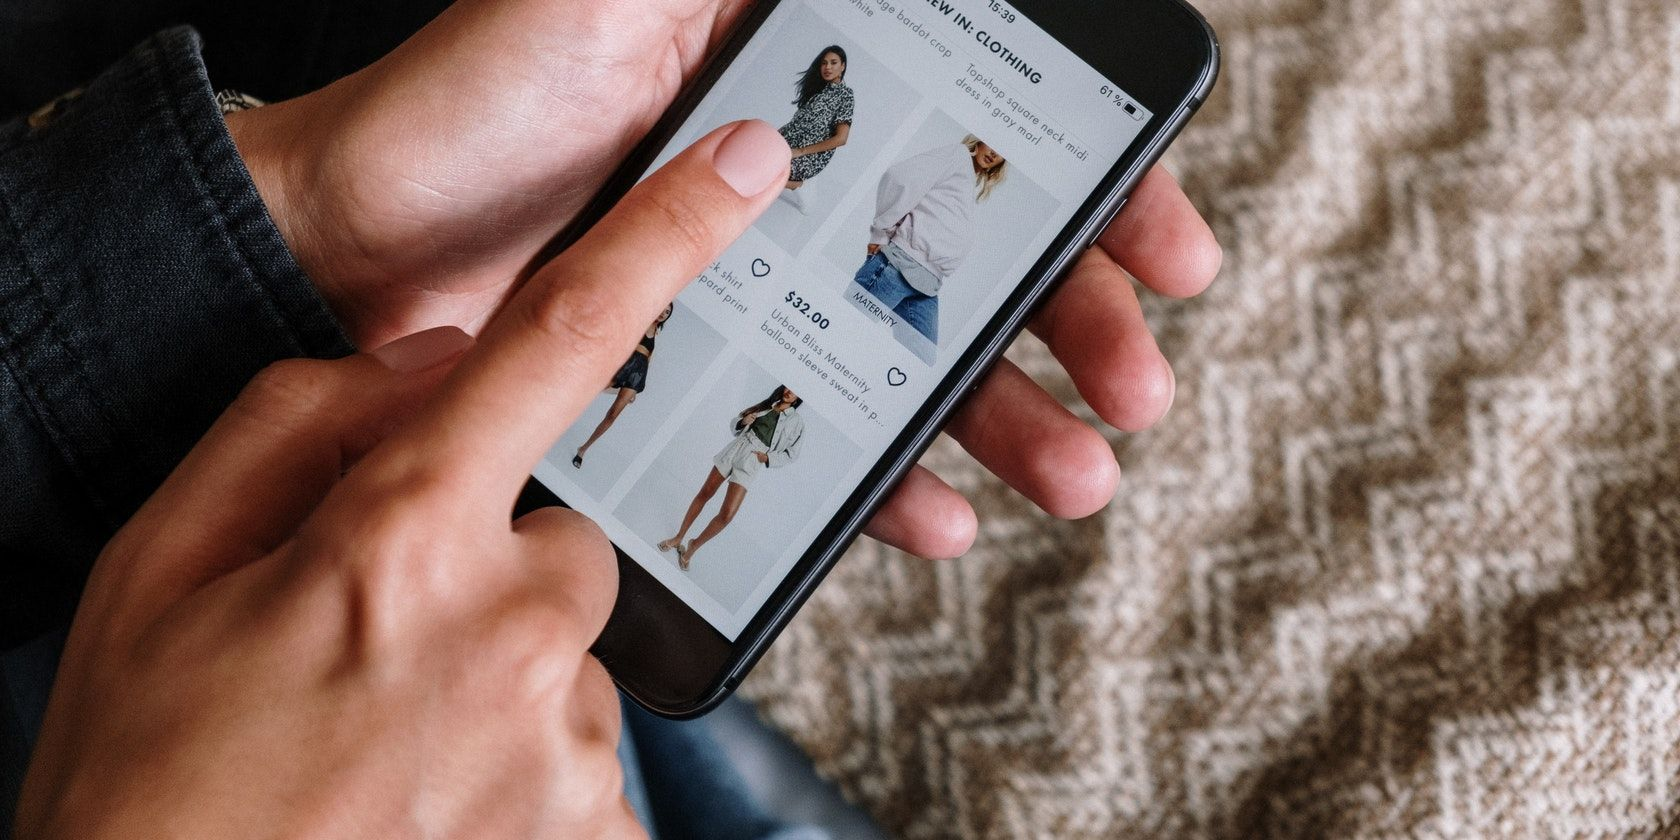 The 10 Best International E-Commerce Sites for Stuff You Can't Find on eBay and Amazon